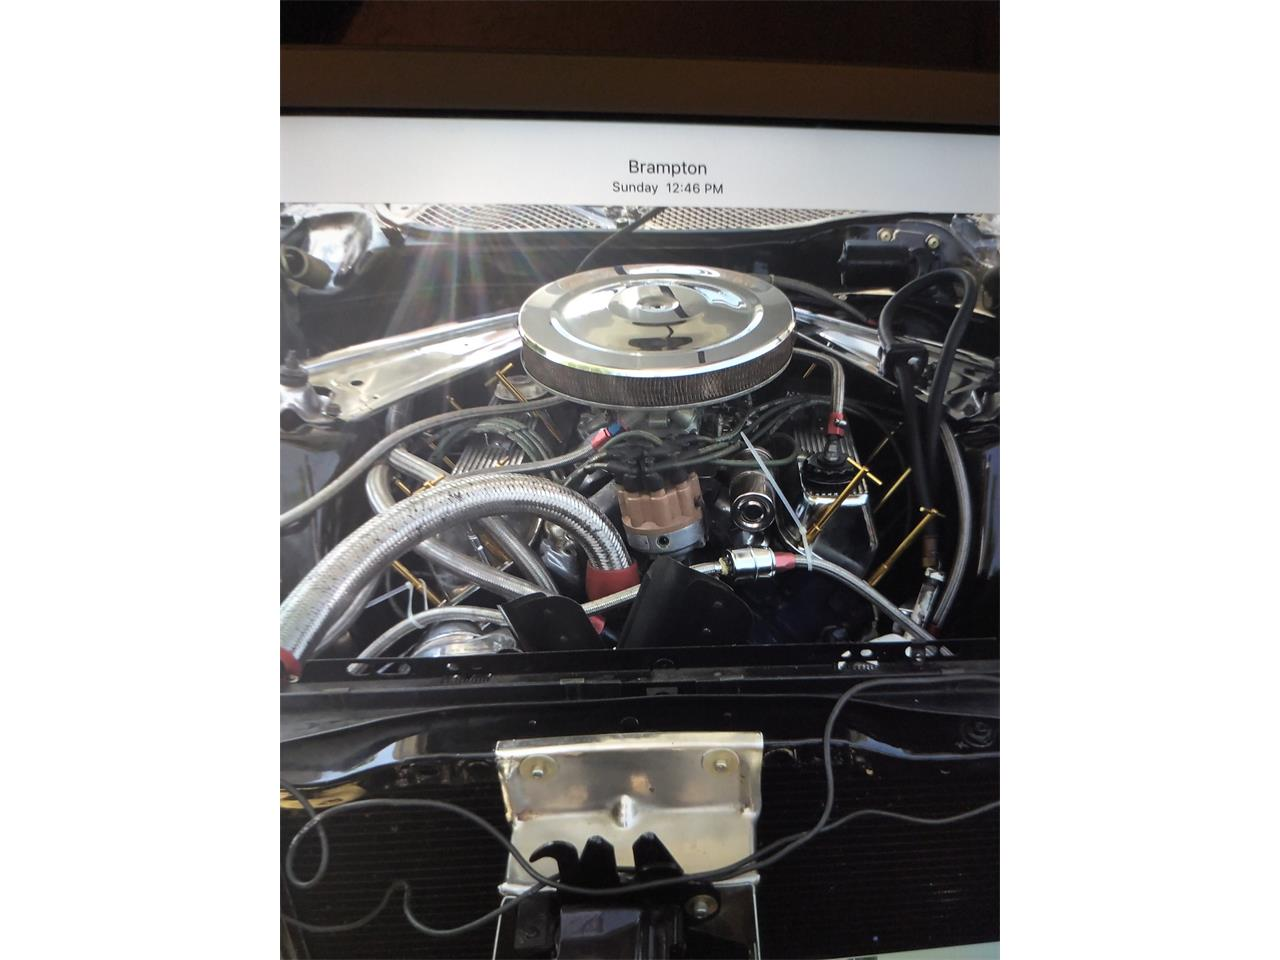 Large Picture of '71 Ford Mustang Boss located in Brampton Ontario - $26,500.00 Offered by a Private Seller - QHGD